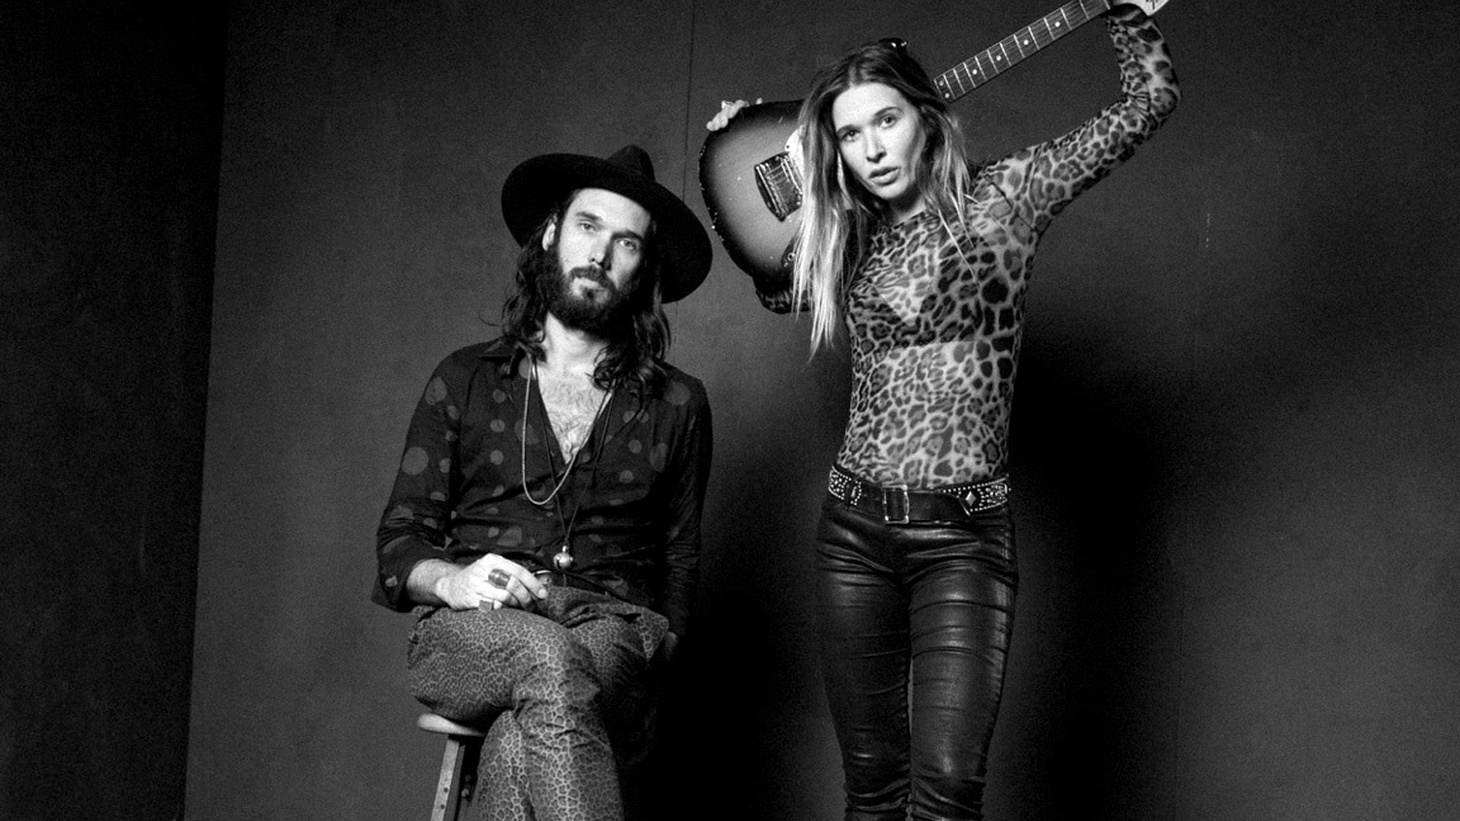 Celebrated siblings Wild Belle recently premiered their latest track Untamed Heart on MBE.